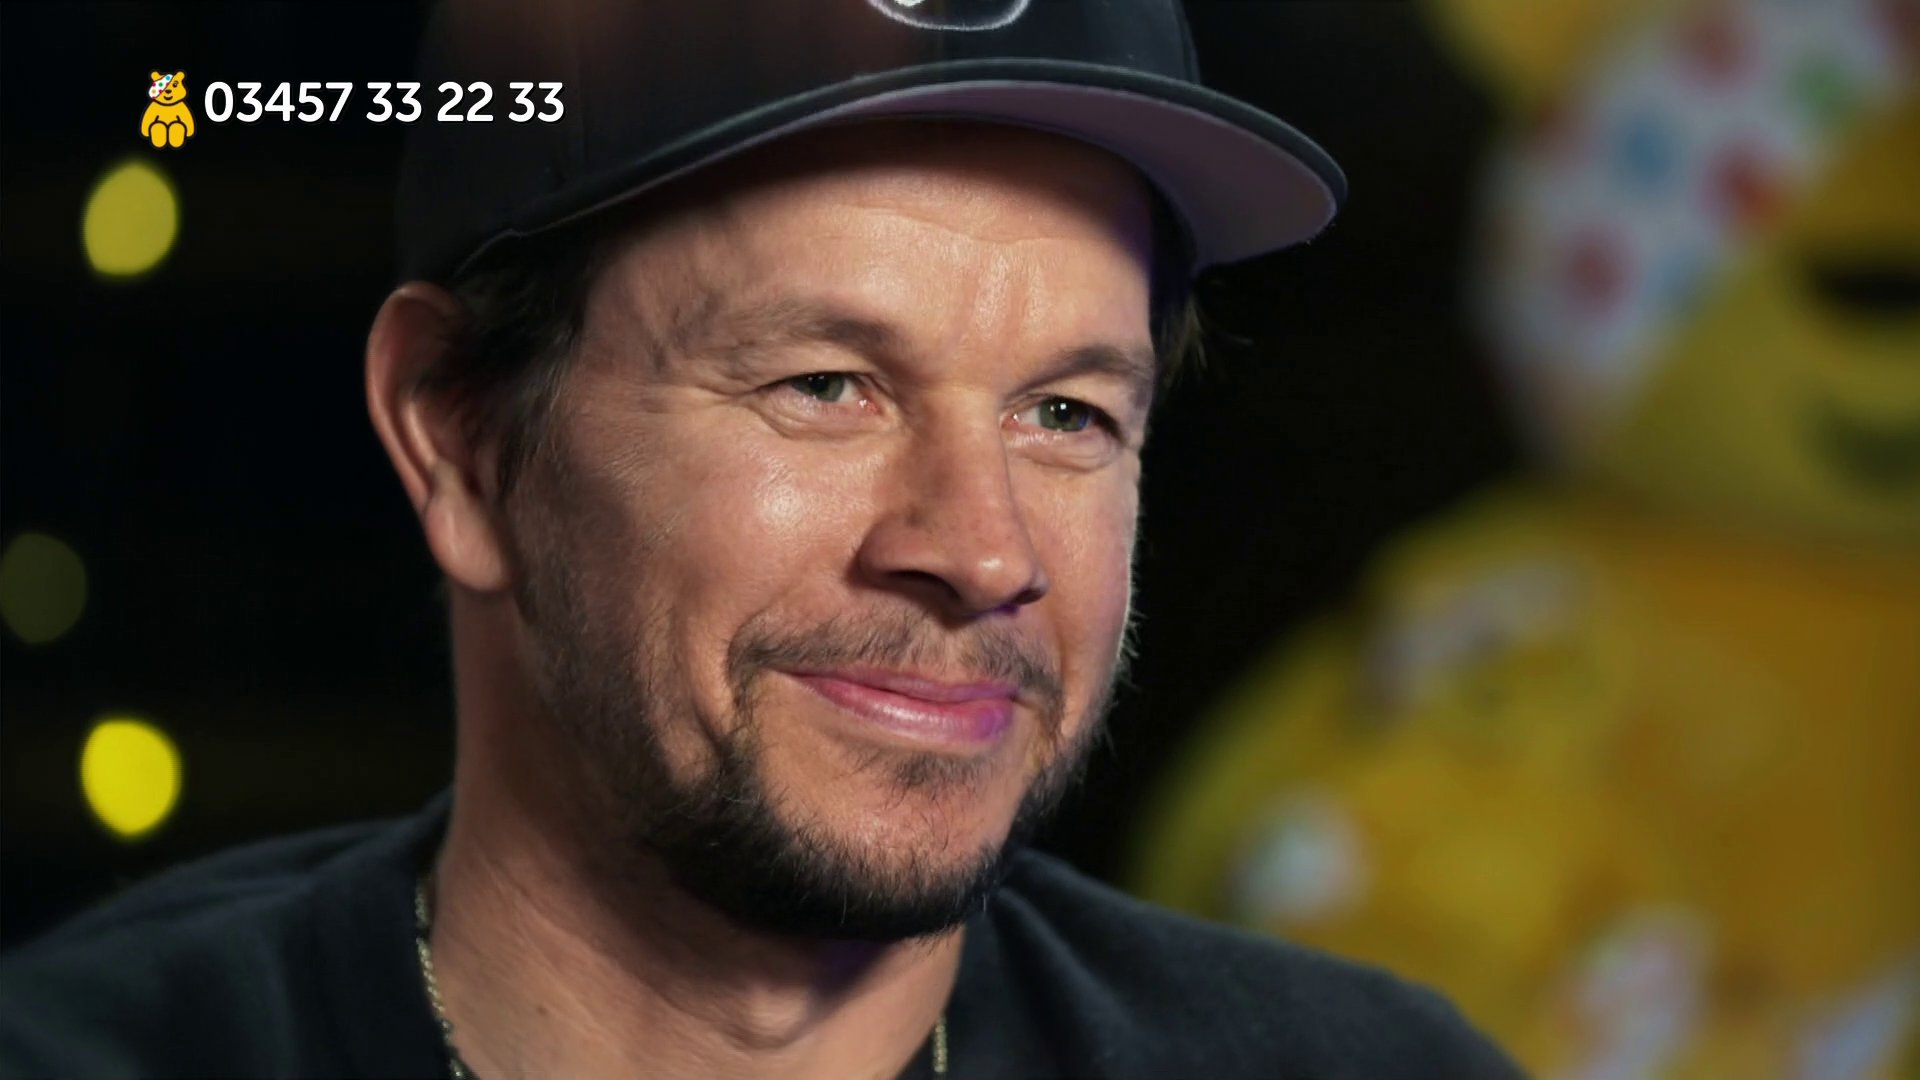 Will Ferrell and Mark Wahlberg have a dad joke face-off for Children In Need 2017